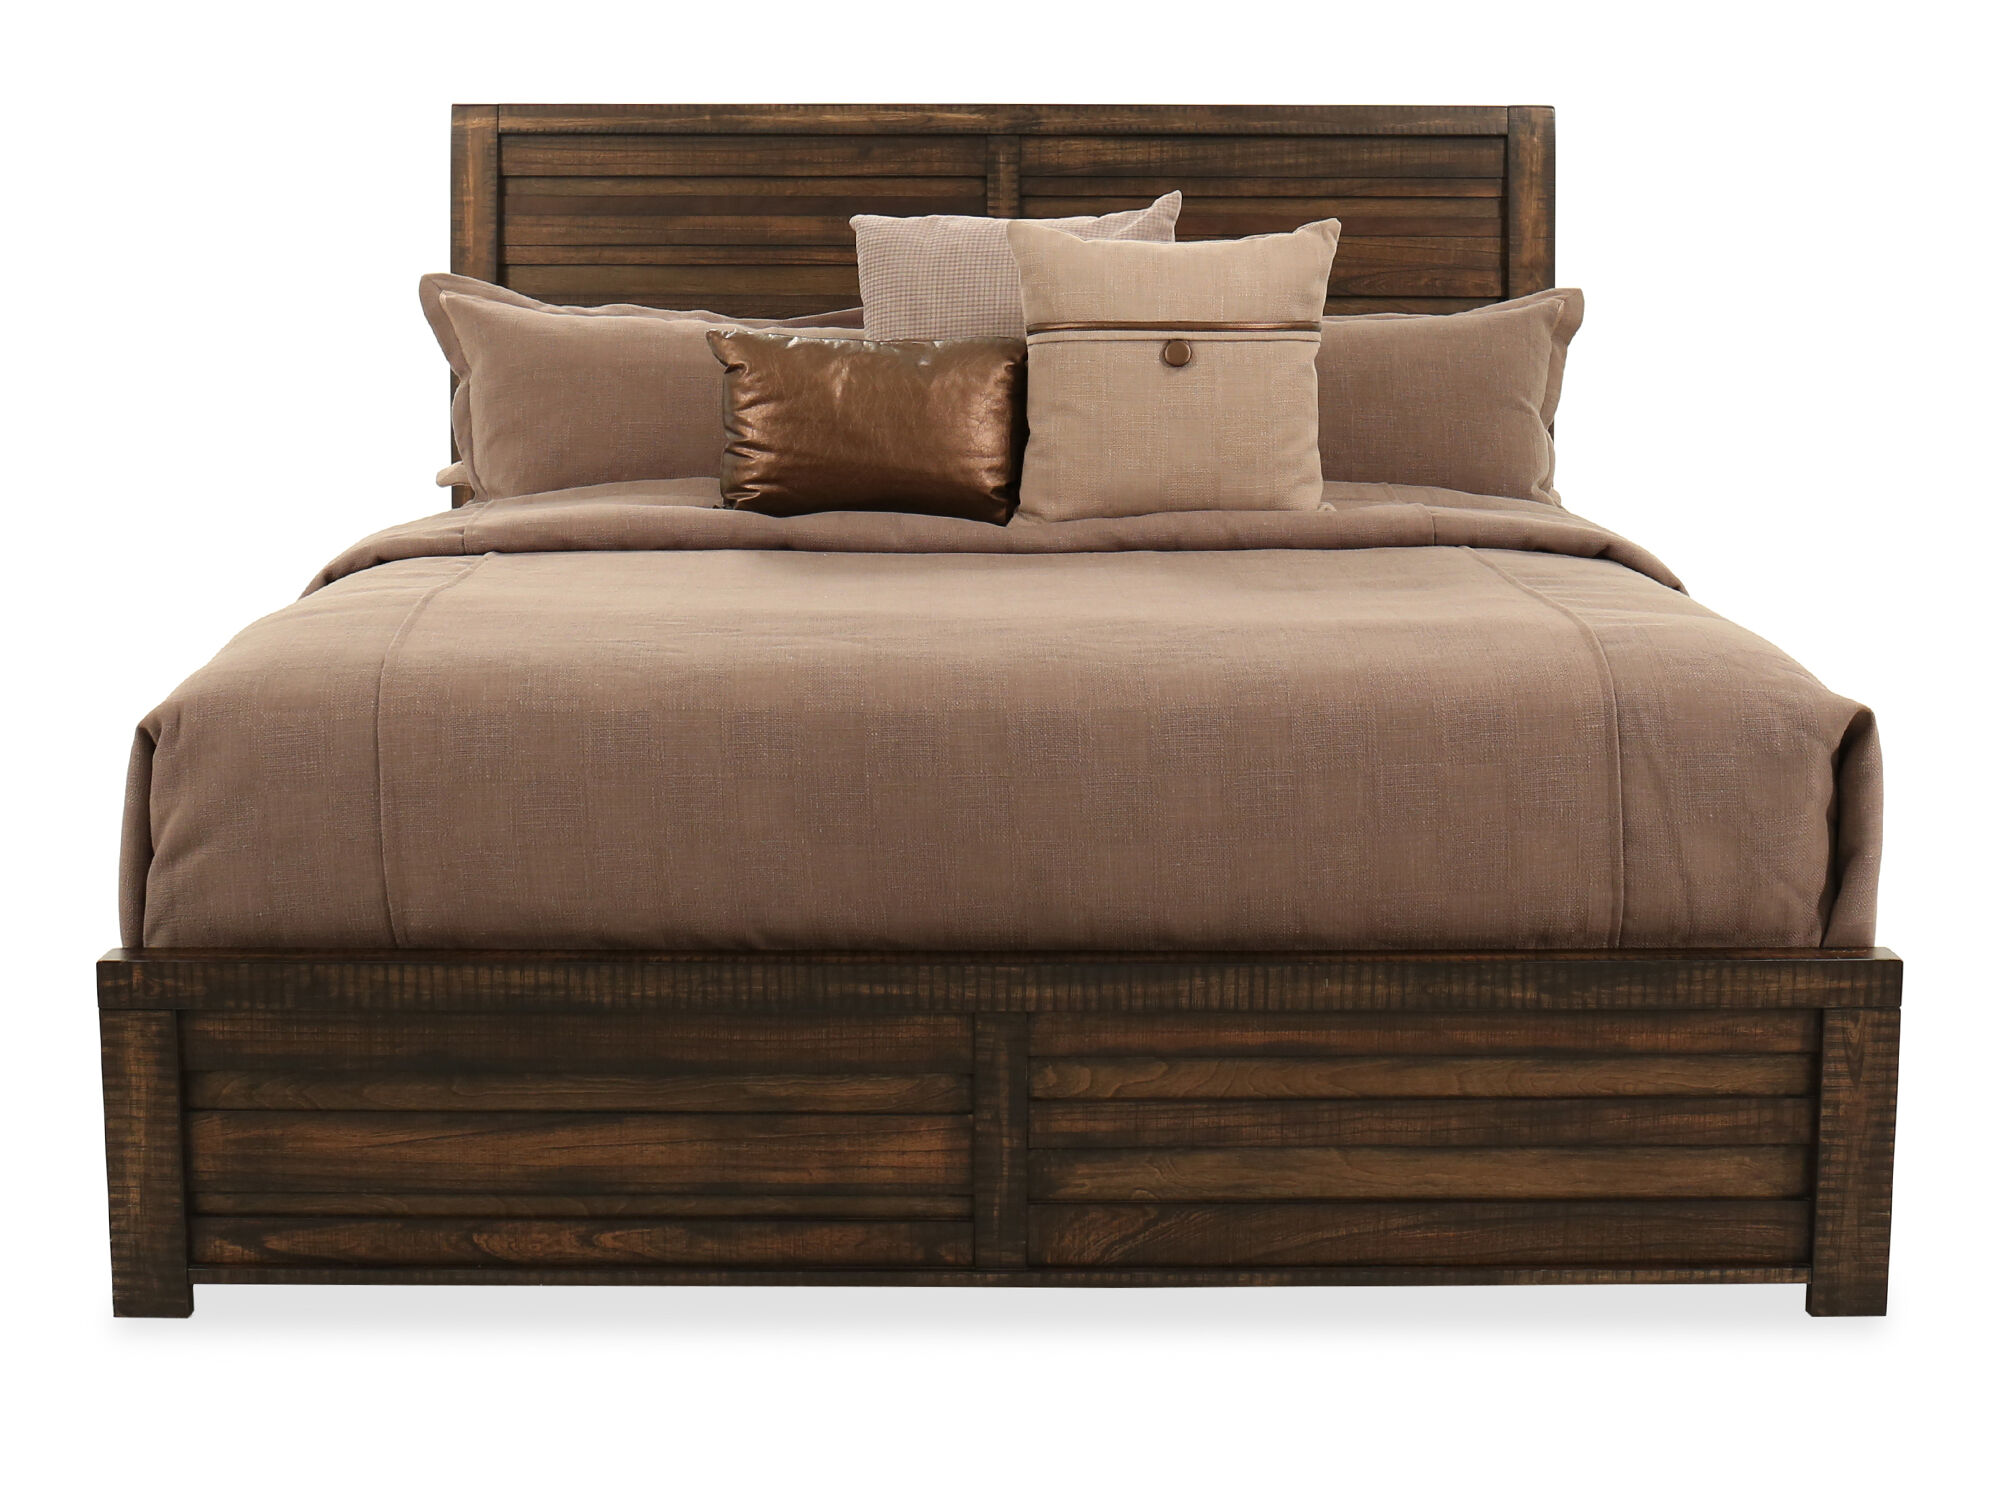 Incroyable Traditional Queen Sleigh Bed In Brown Tobacco ...